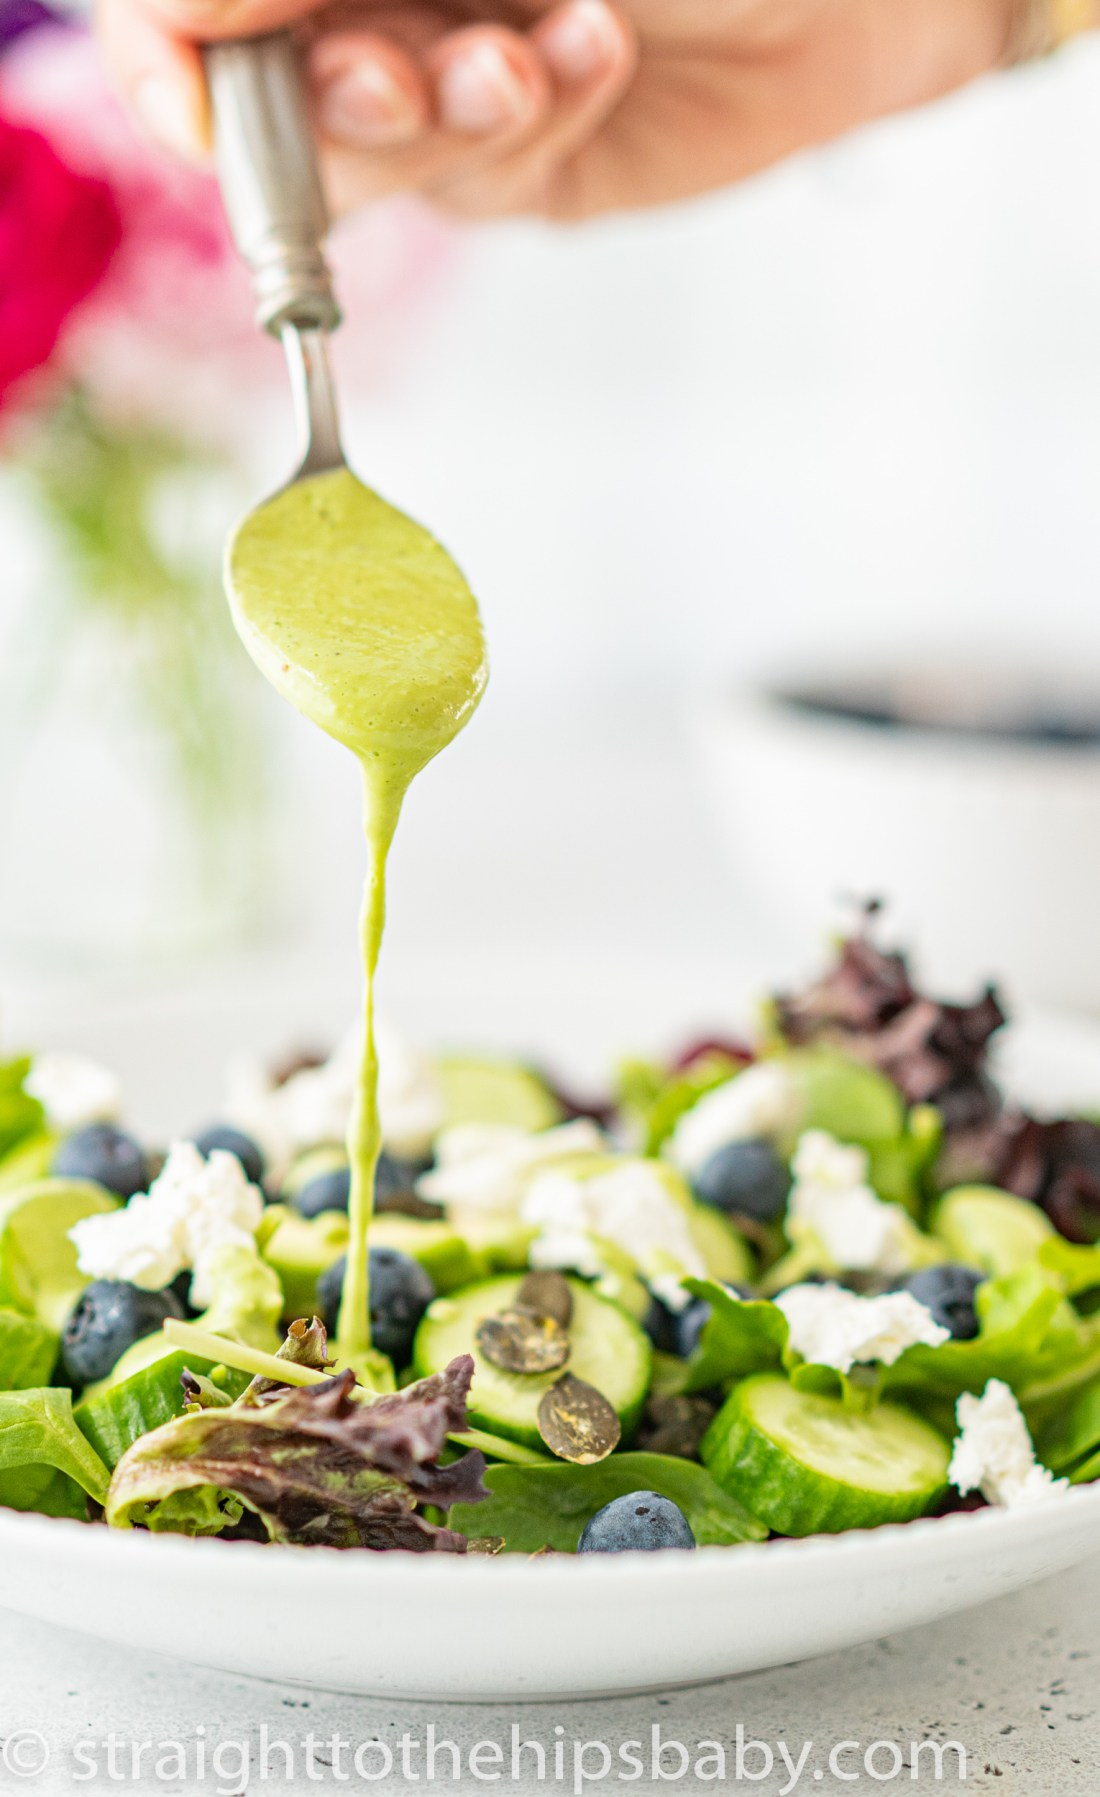 spooning a heaping portion of creamy green basil dressing onto a plate of salad